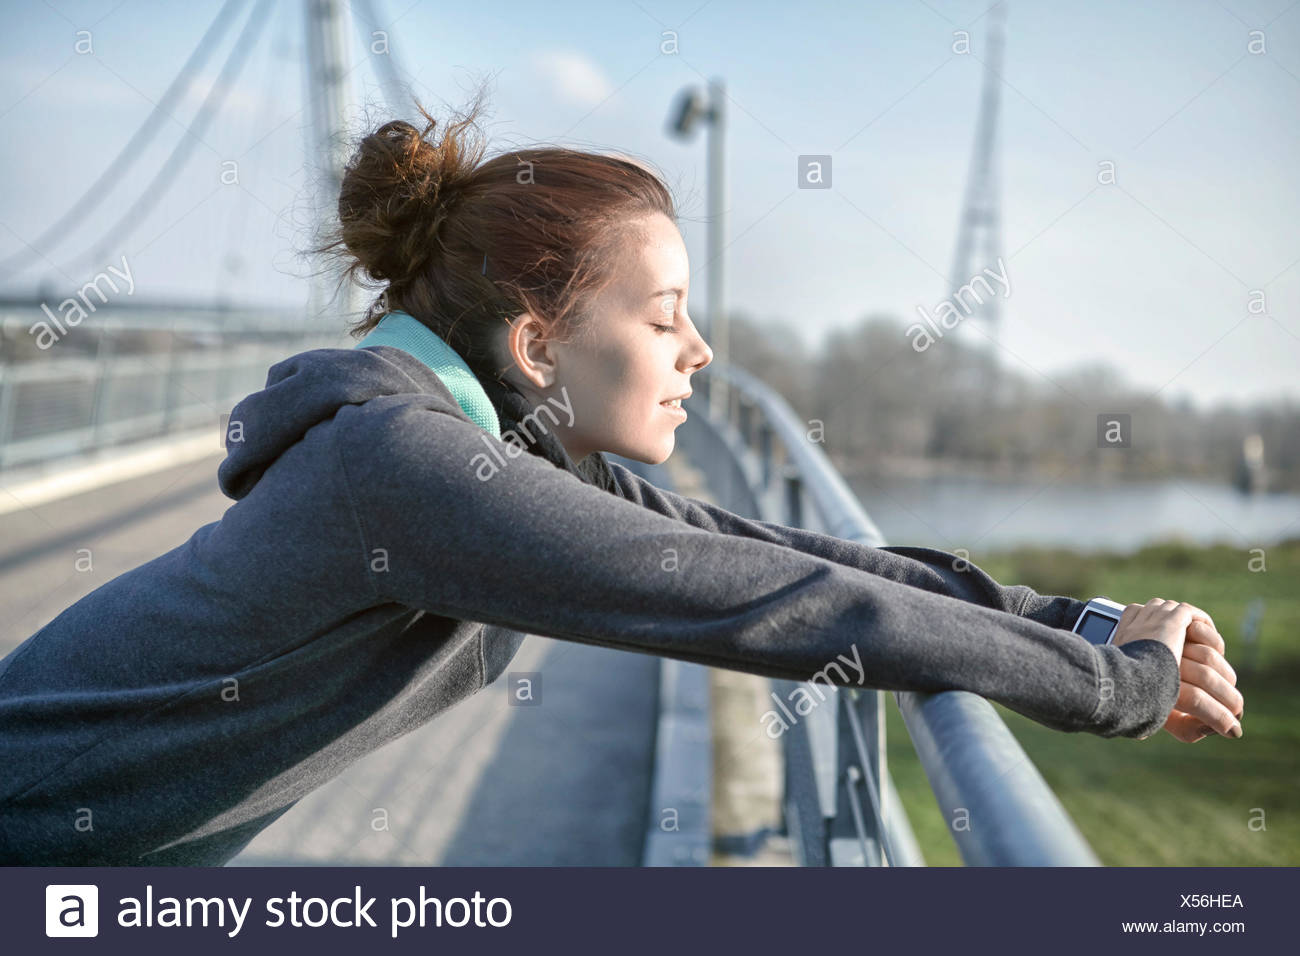 Young woman with heart rate monitor relaxing after jogging - Stock Image